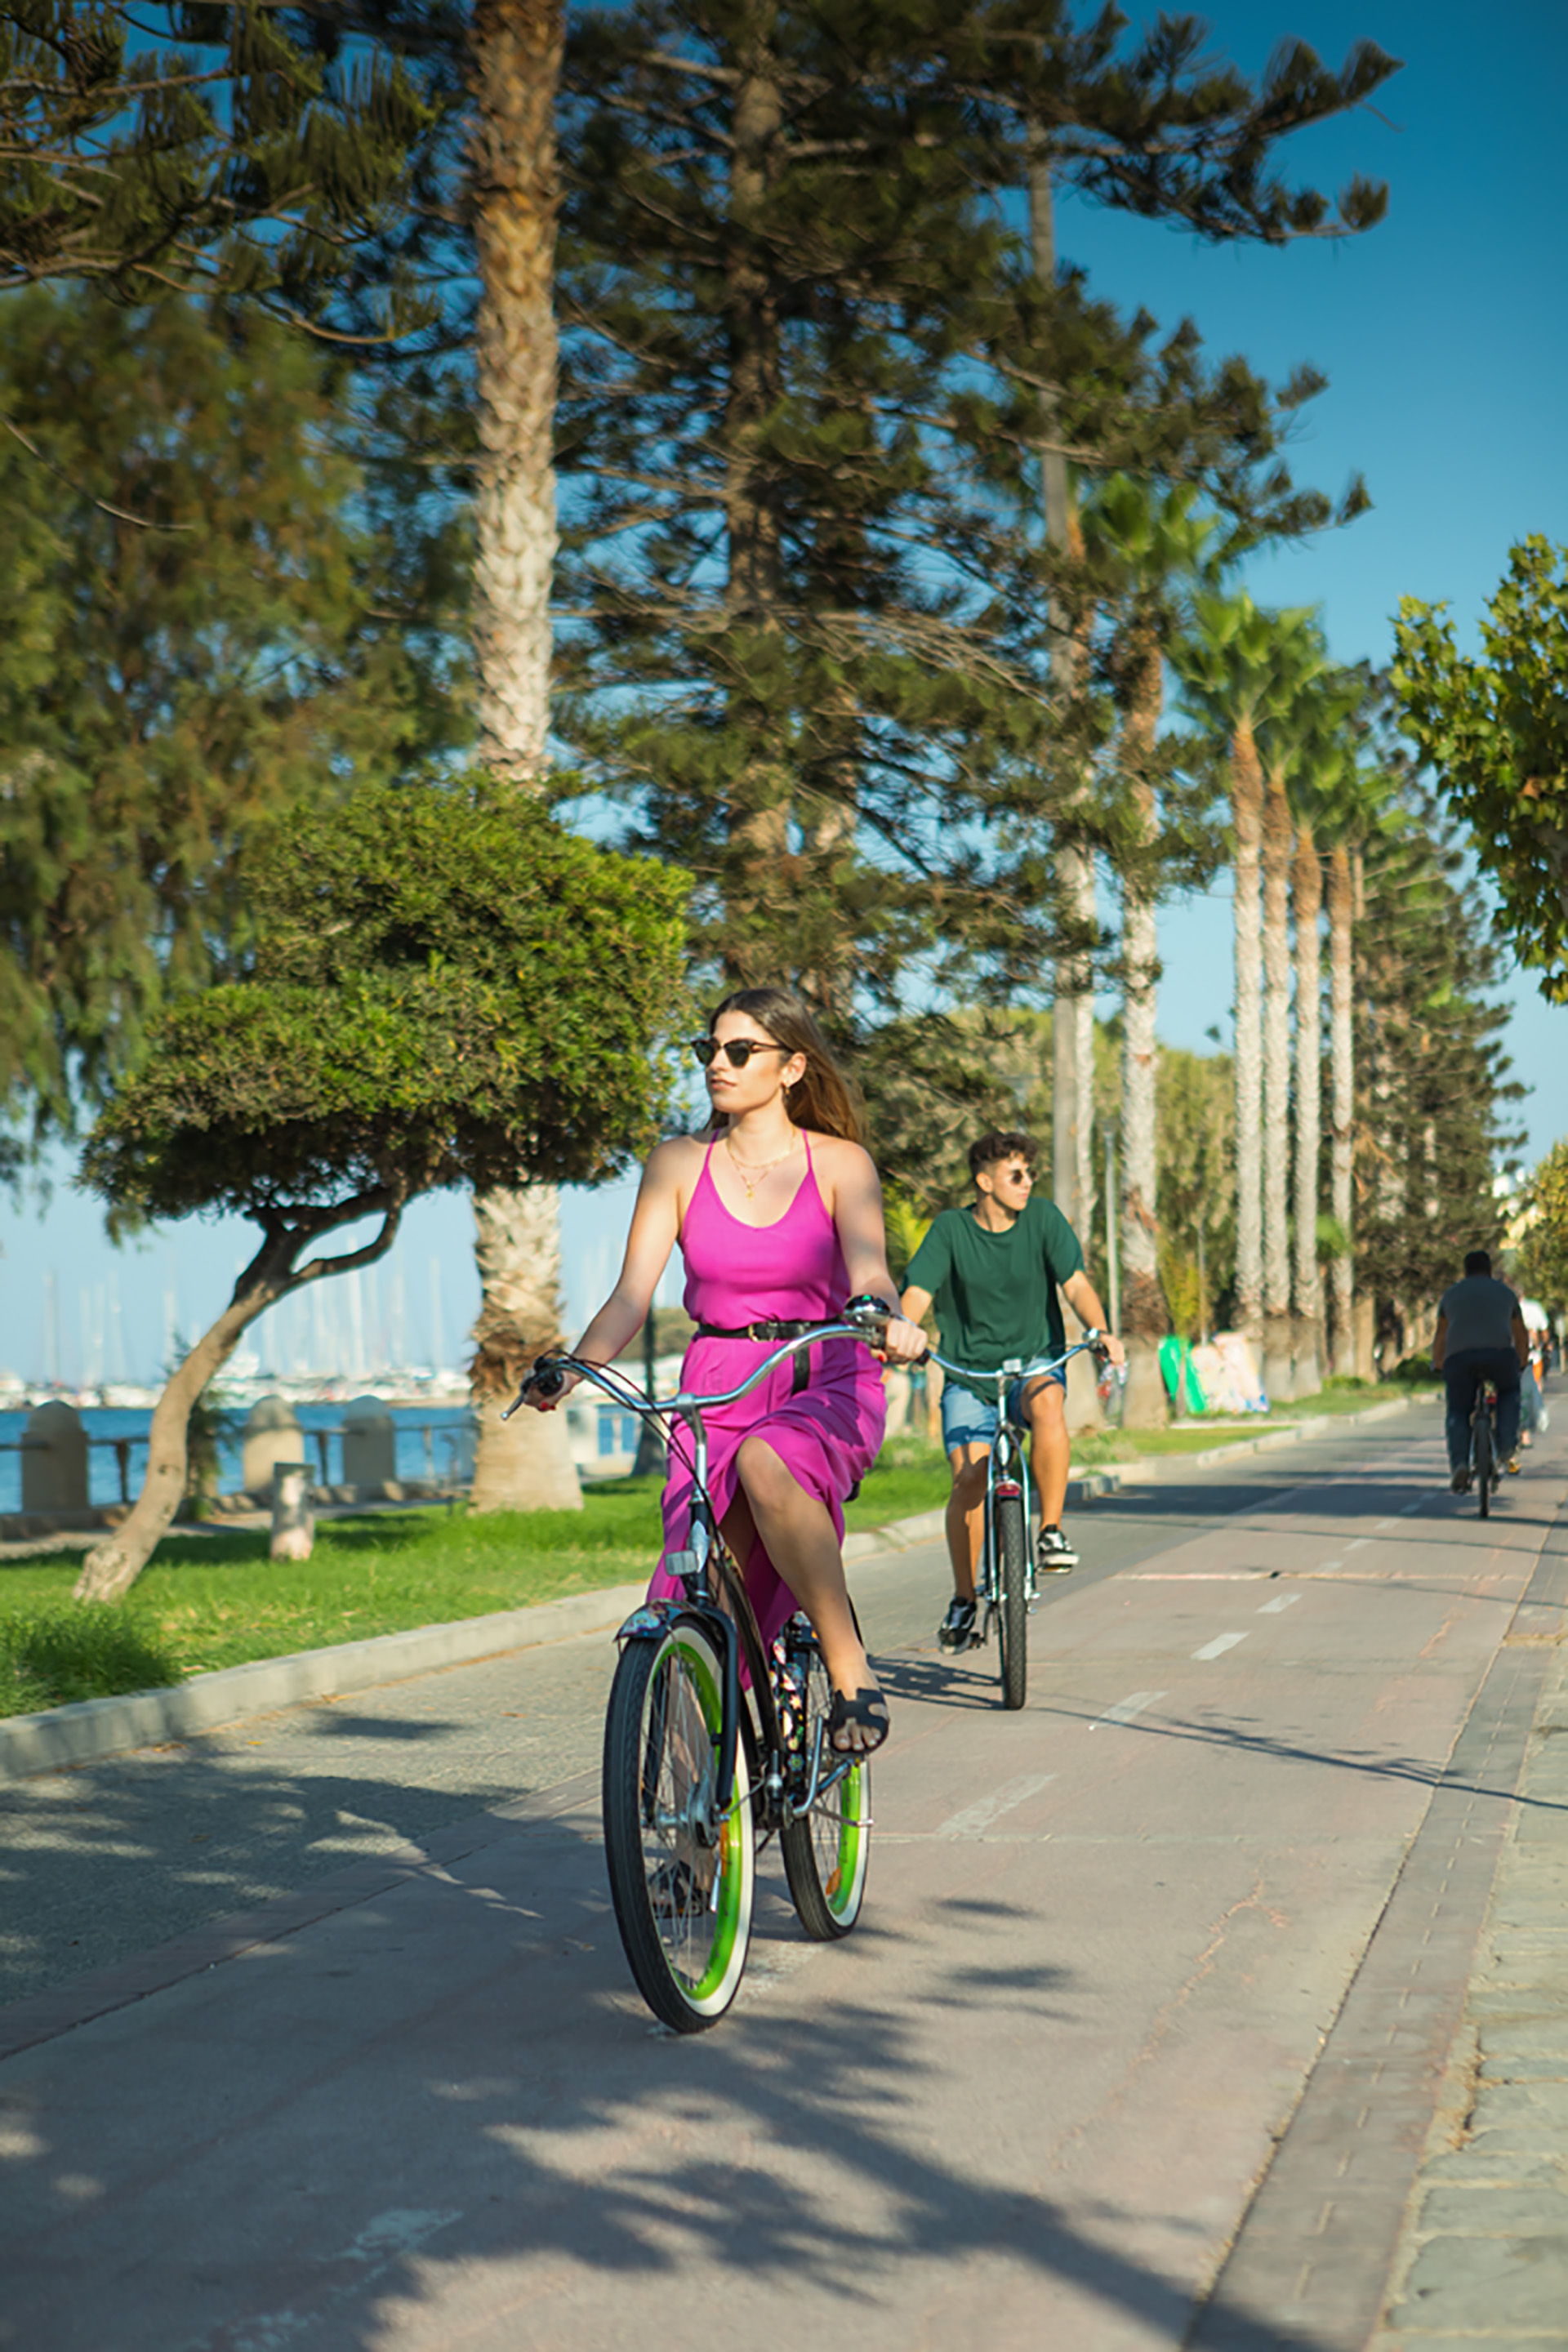 Kos is known as the best island to cycle around